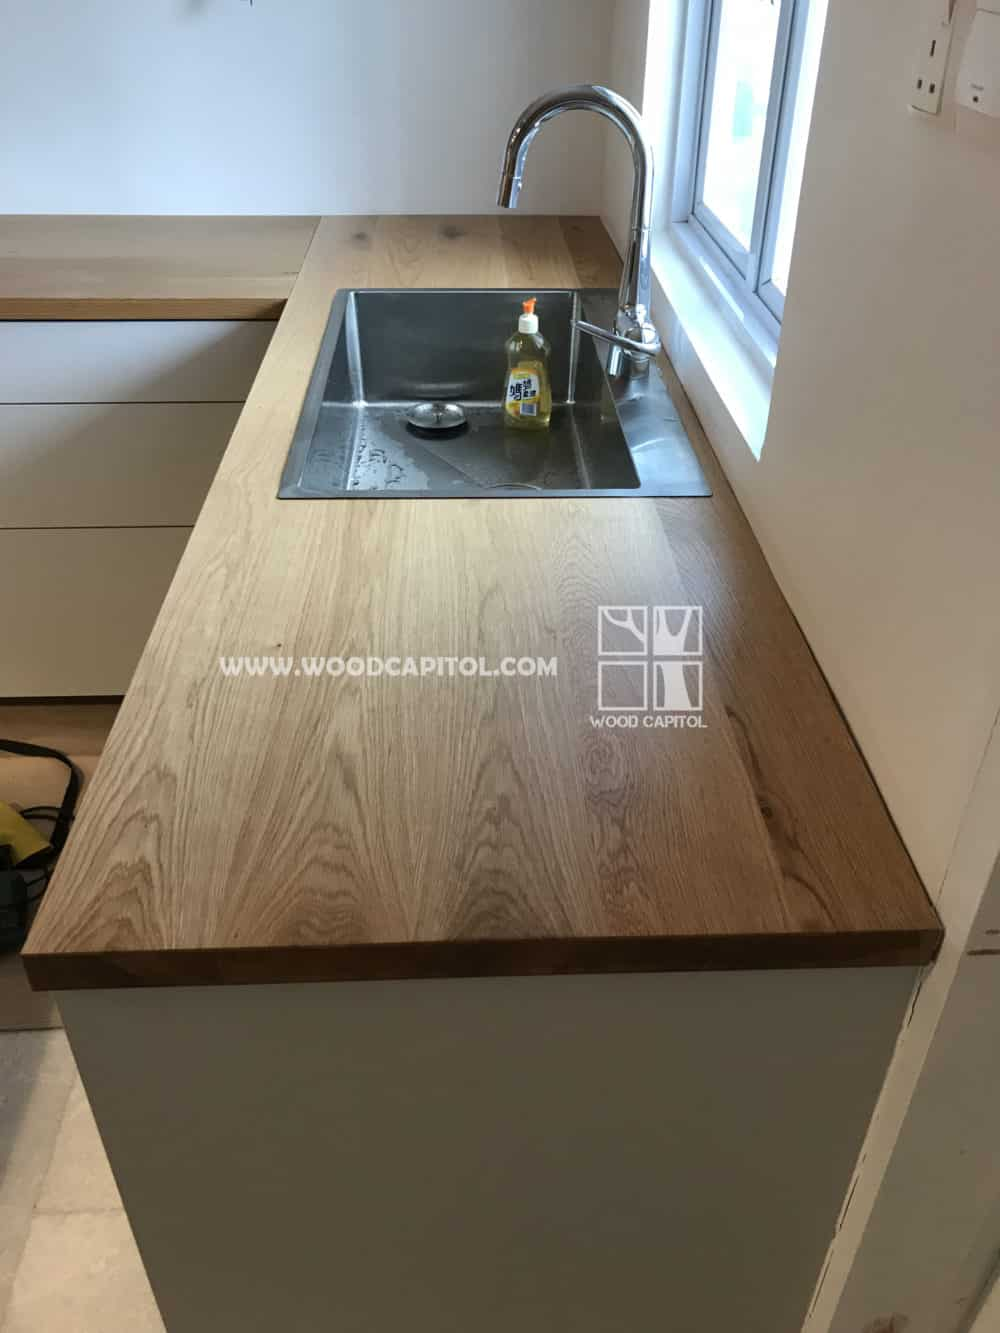 Wood Capitol Oak Wood Kitchen Sink Counter Top